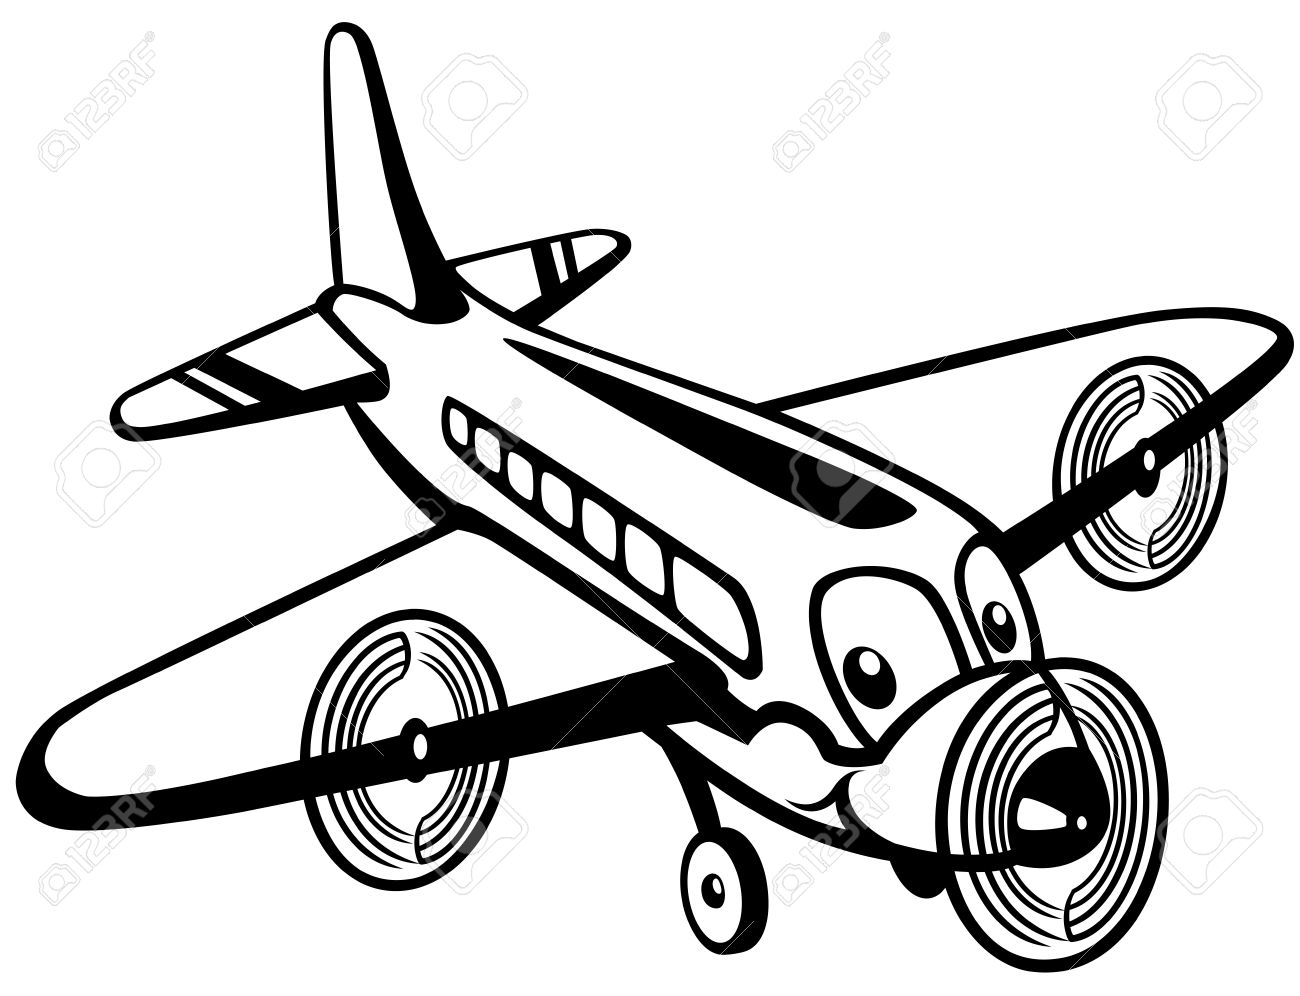 Kids action figures clipart black and white transparent download Black And White Airplane Pictures | Free download best Black And ... transparent download